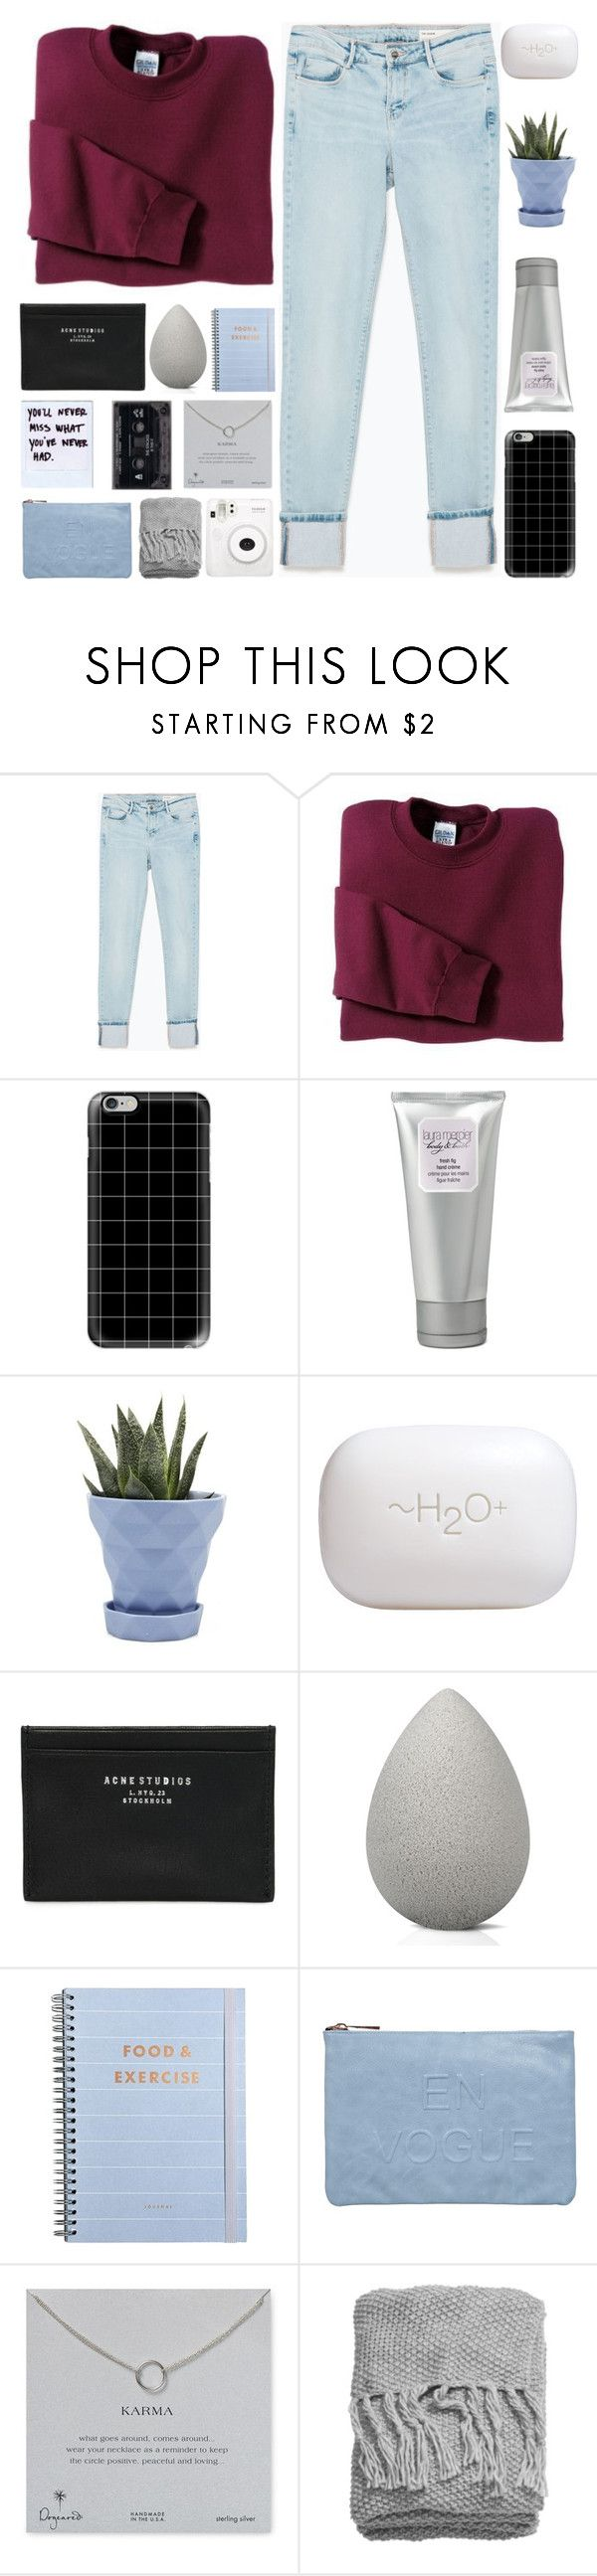 """AUTUMN LEAVES FALLING DOWN"" by s-erene ❤ liked on Polyvore featuring Zara, Gildan, Casetify, Laura Mercier, Chive, H2O+, Acne Studios, beautyblender, Miss Selfridge and Dogeared"